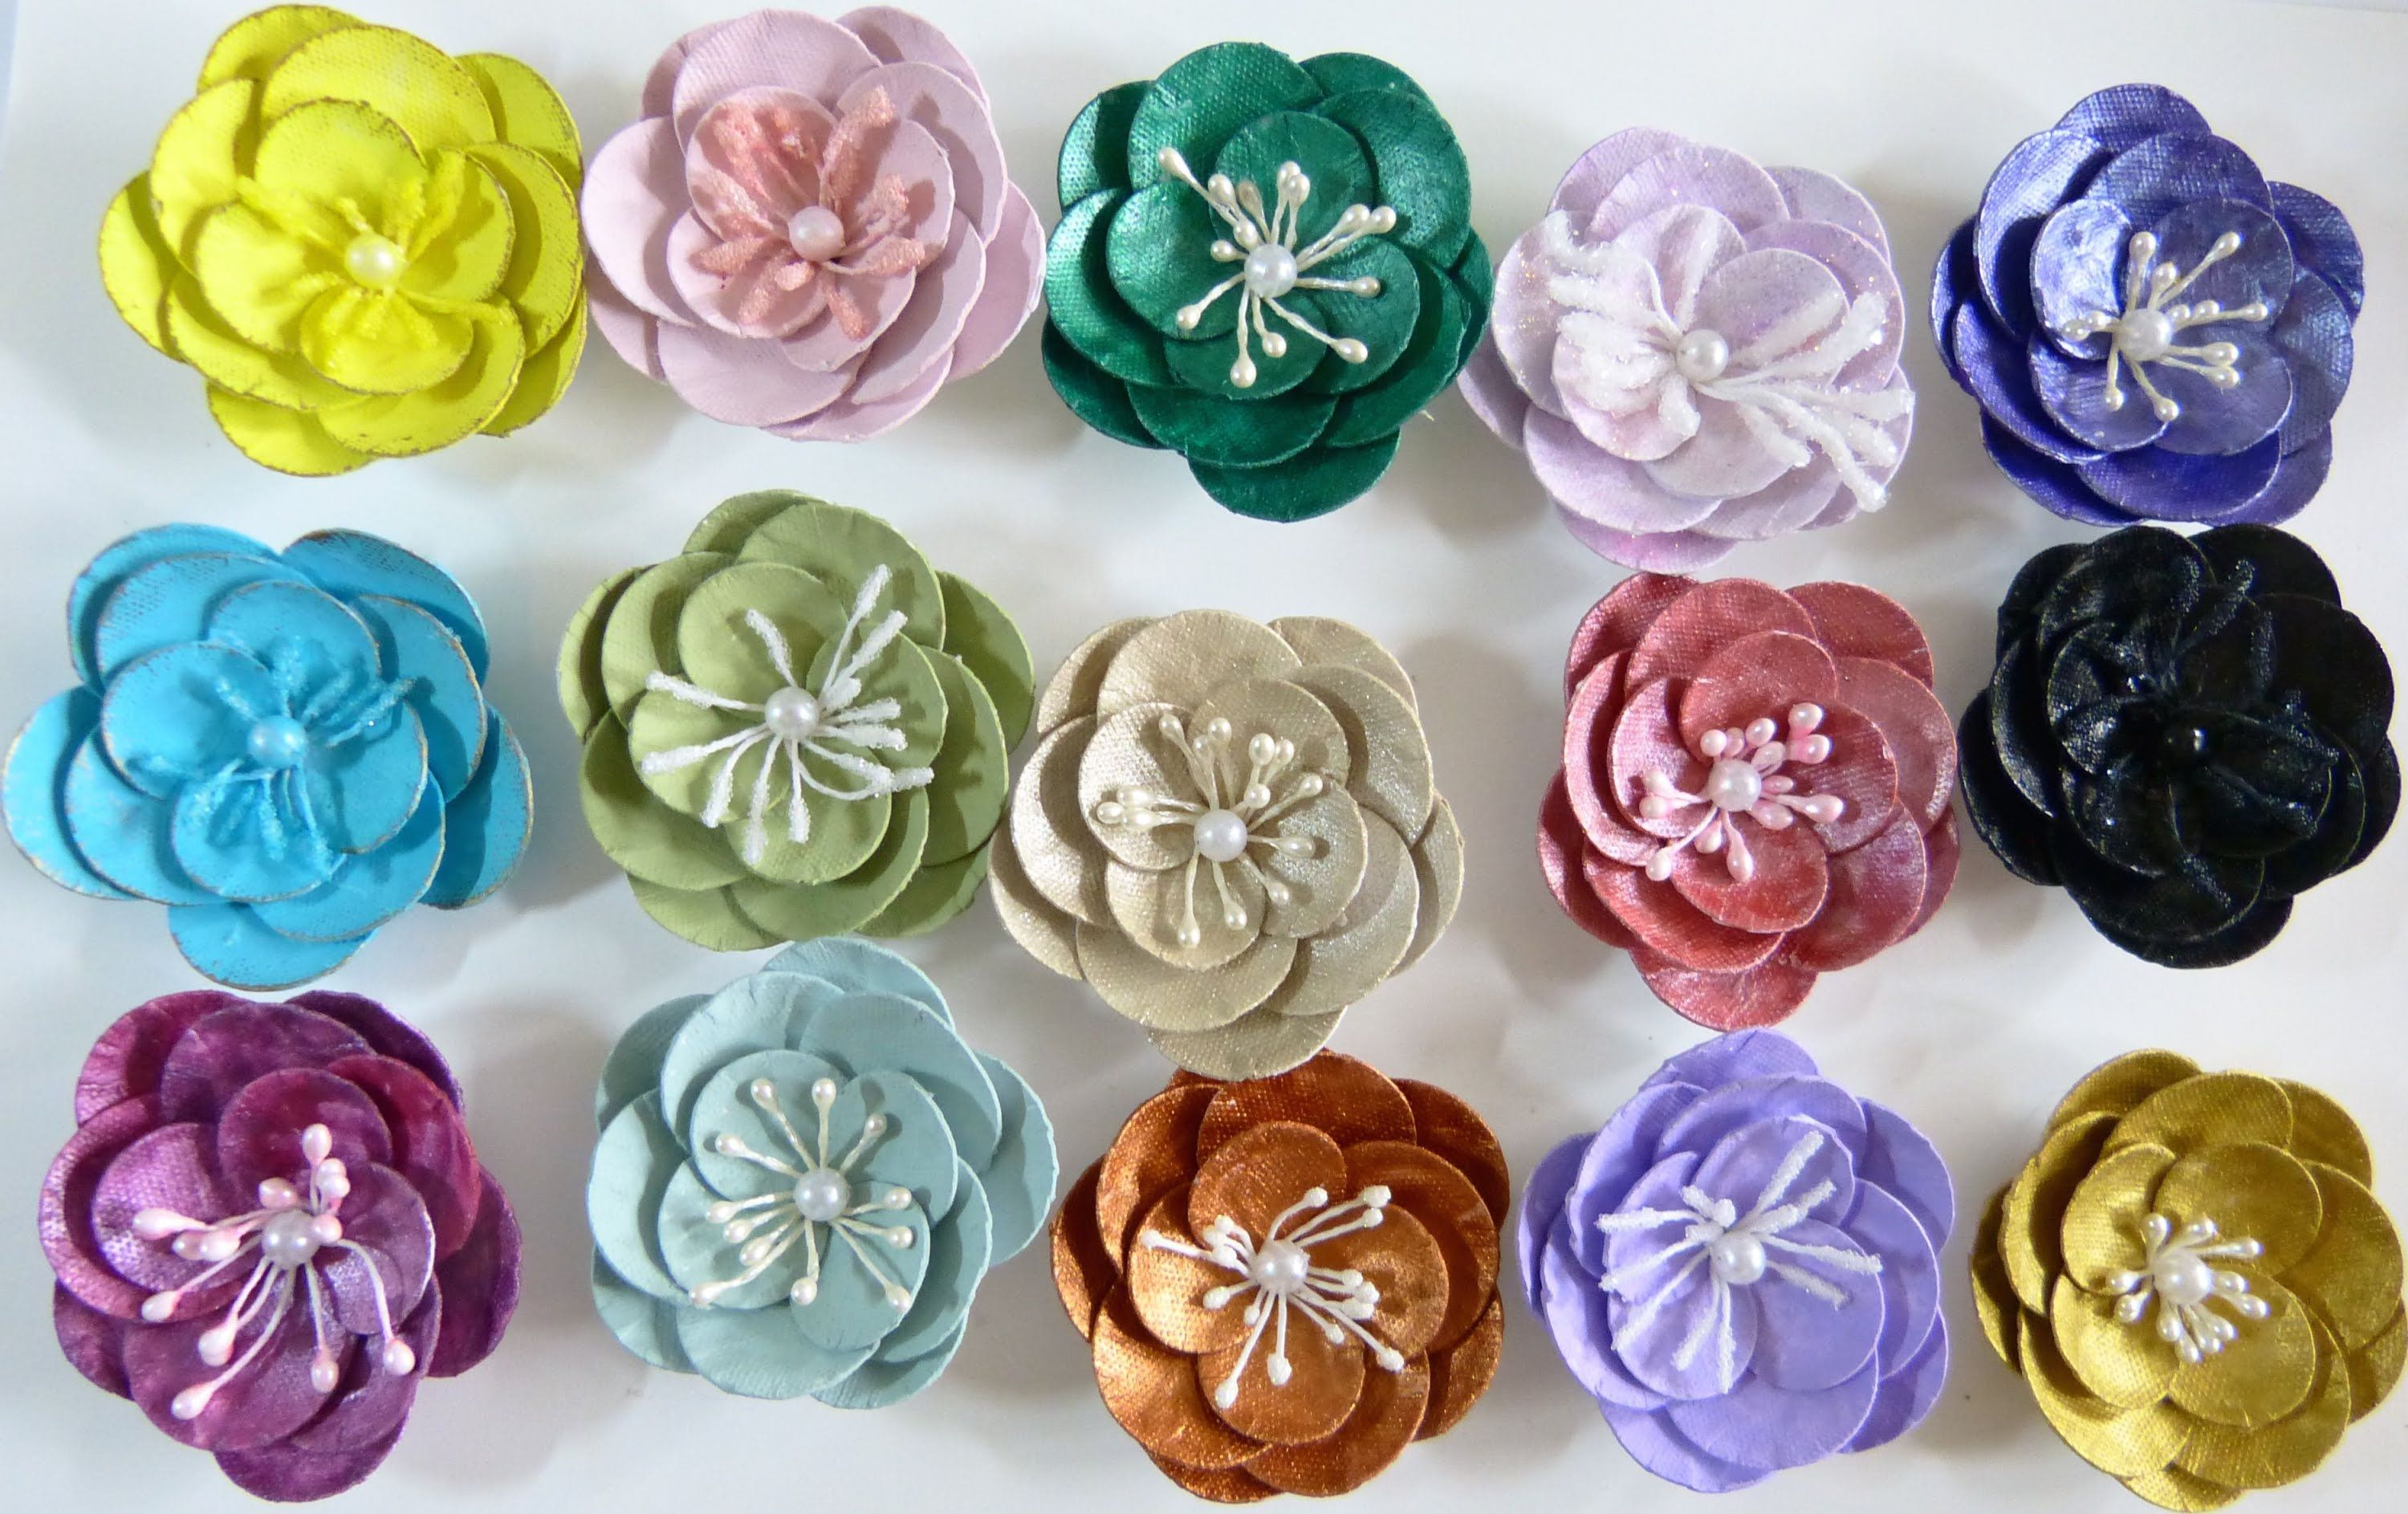 Diyeasy To Make Paper Plate Flower Tutorial By Sacrafters Flowers